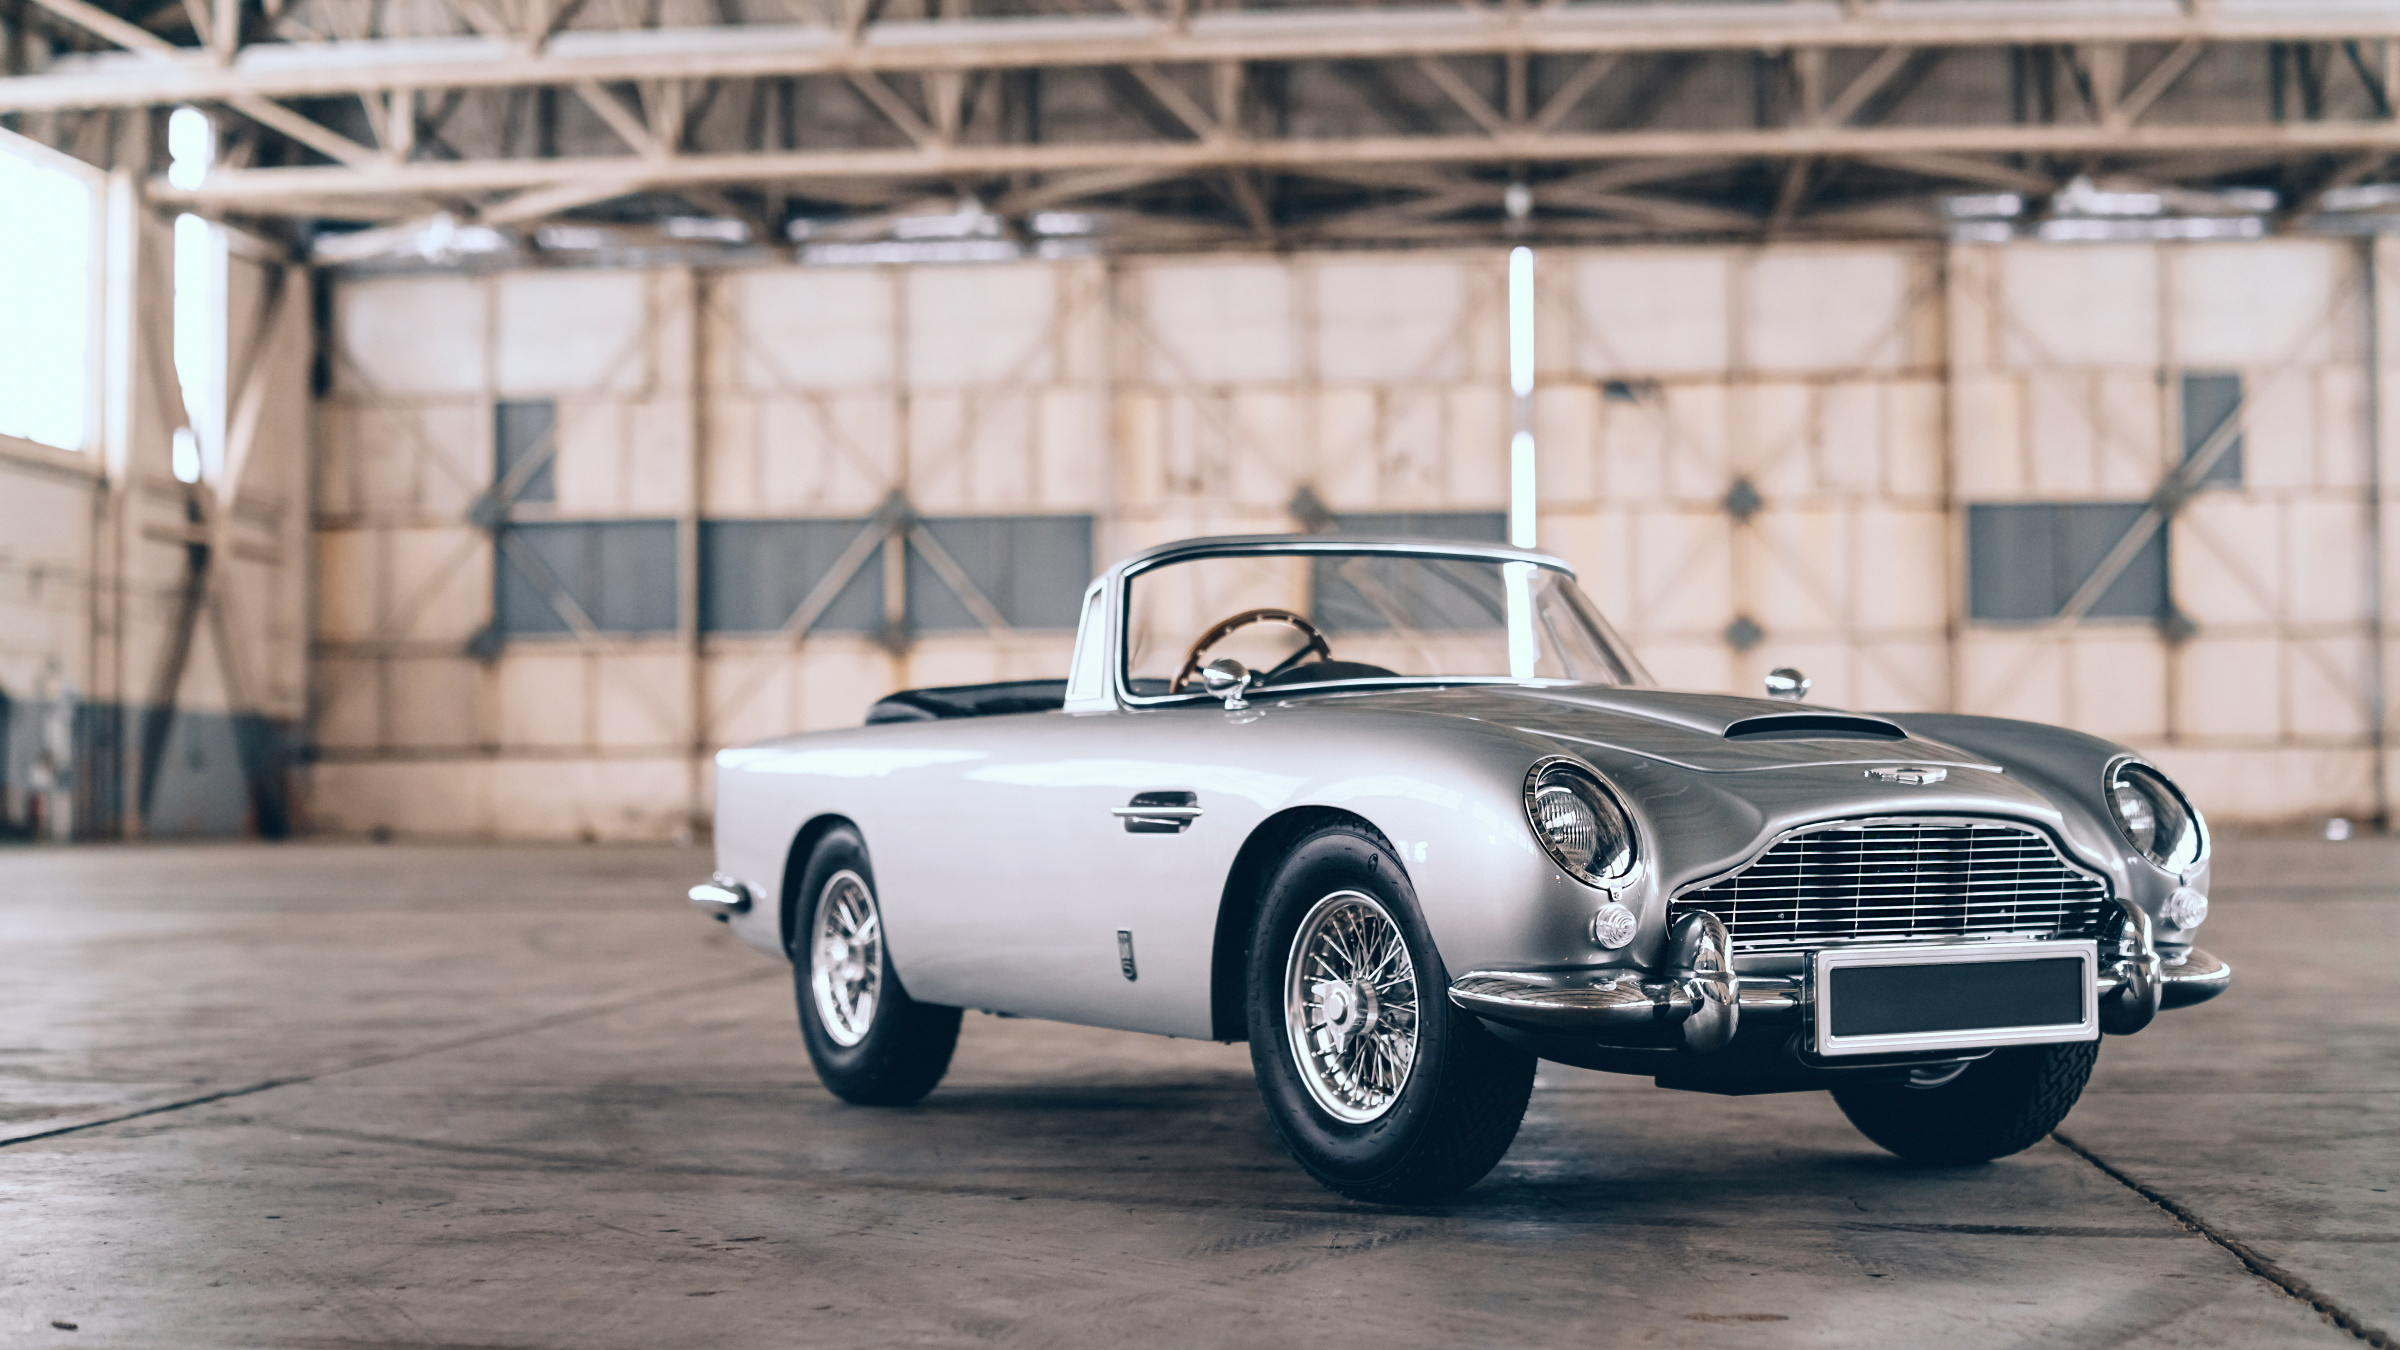 Aston Martin DB5 Junior No Time To Die Edition Is The Ultimate Car For Kids